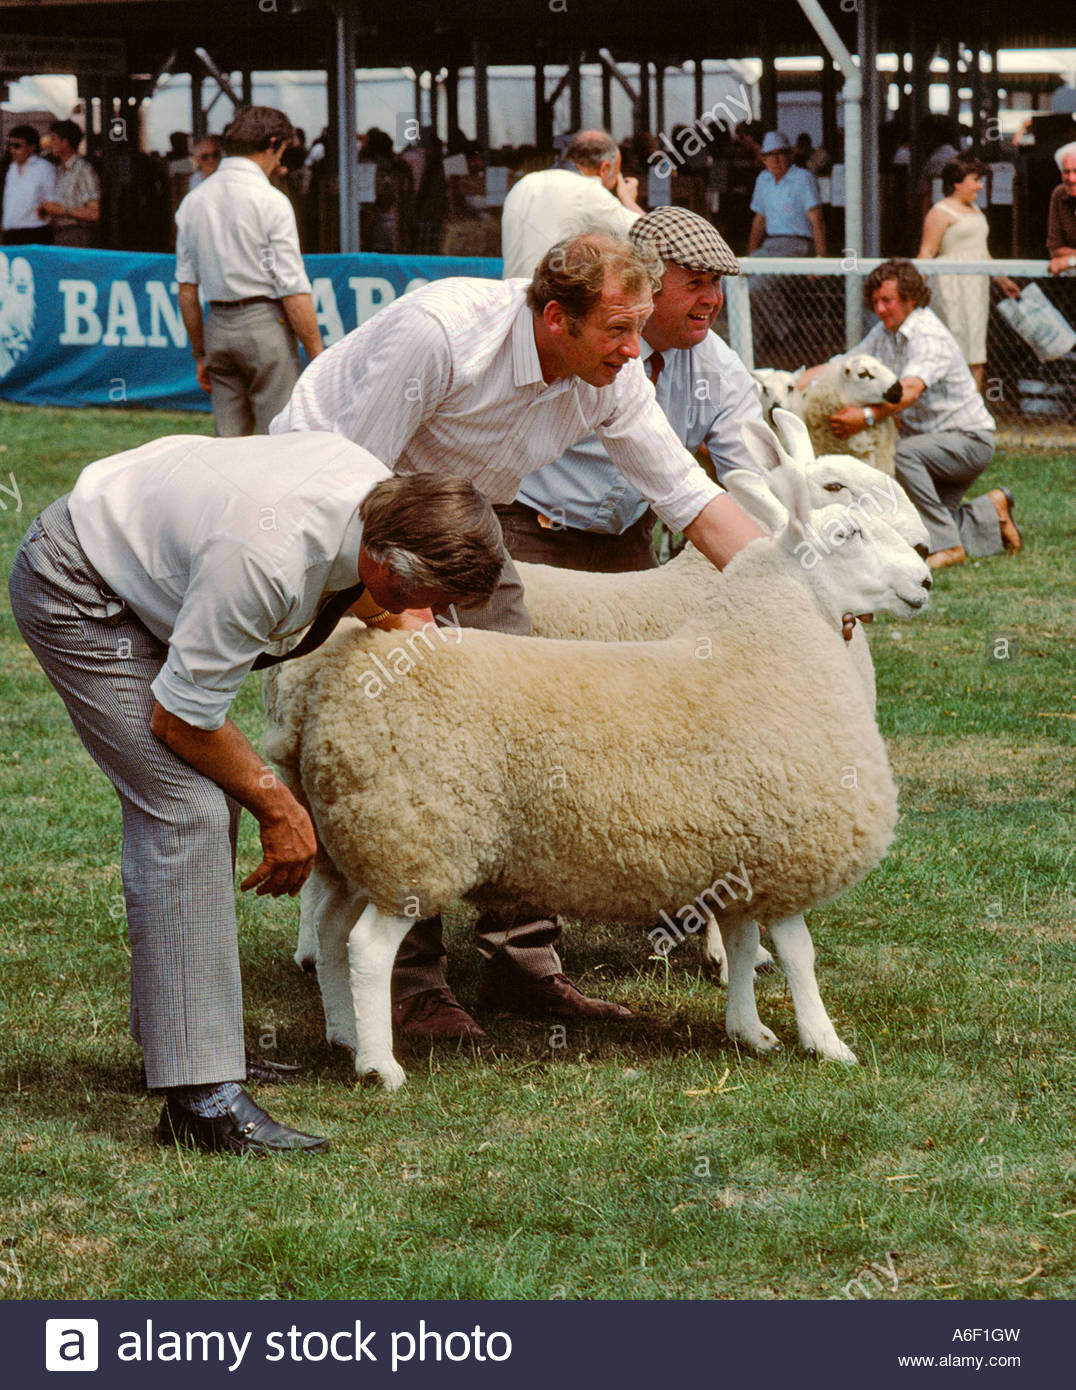 Royal Welsh Show Mid-Wales, FARMERS DISPLAYING SHEEP AT AN AGRICULTURAL SHOW THE ROYAL WELSH ...